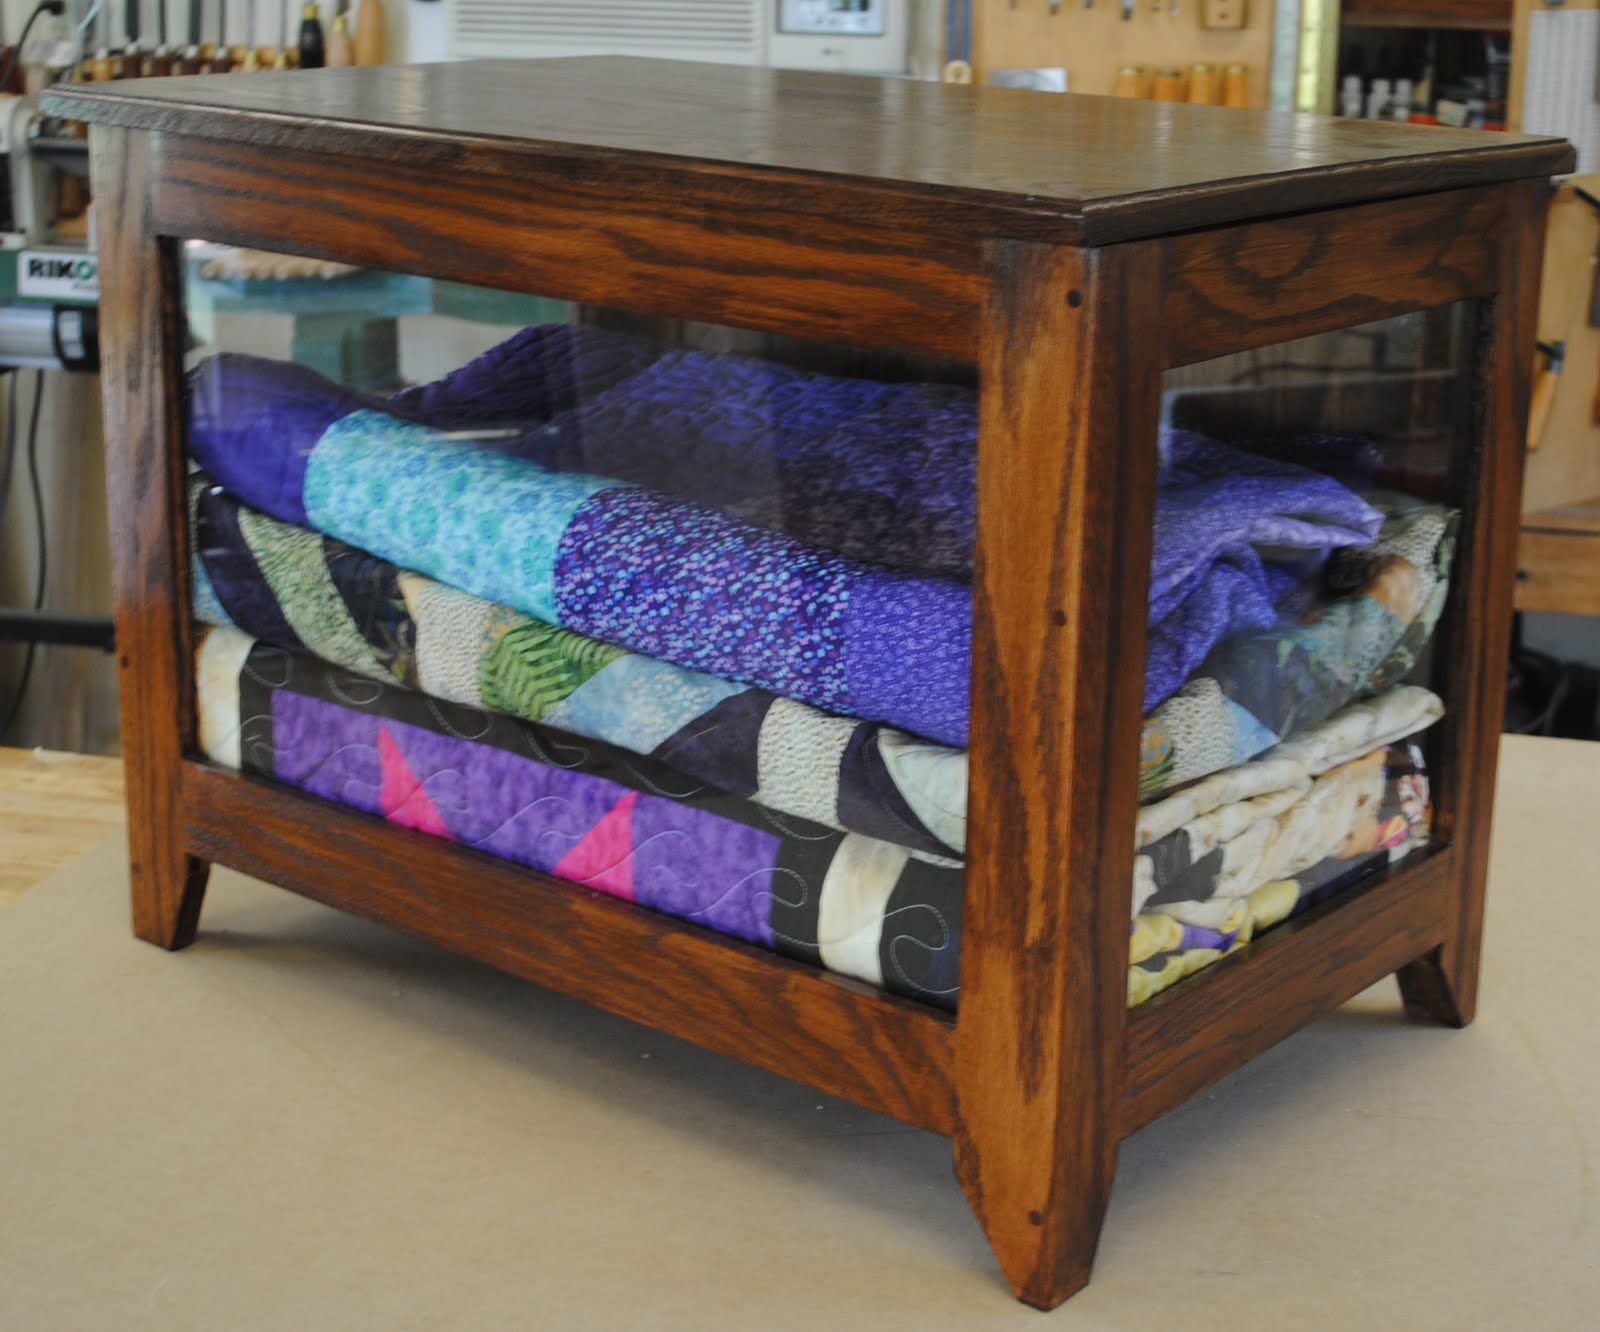 glass quilt display case | Frame and panel construction (glass on ... : quilt display cases - Adamdwight.com